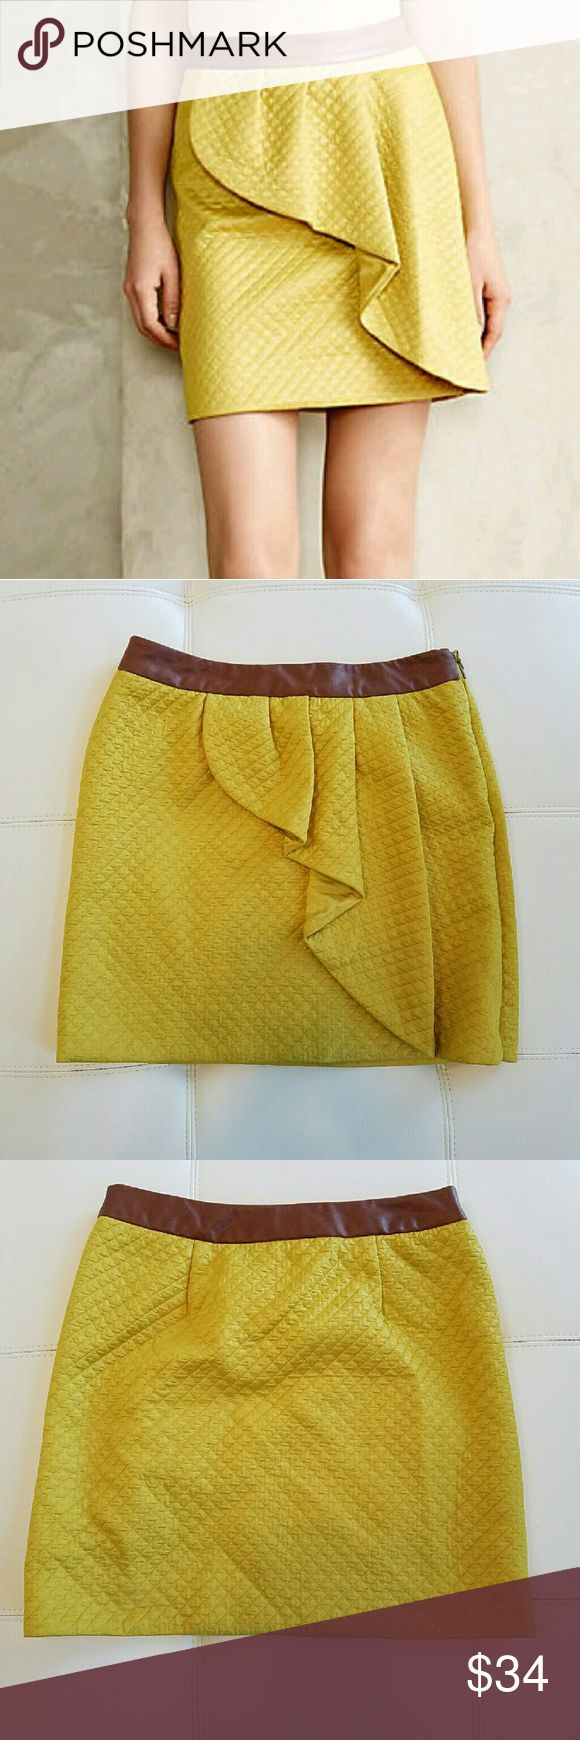 NWOT Anthropologie Lemon Petal Skirt (HD in Paris) This skirt is amaaaazing. Slightly longer than your average mini. Thick, quilted base in mustard lemon yellow petal, with a front ruffle flounce. Cognac faux leather band. Hook & eye side zip closure.  The teensiest nearly invisible hole, the size of a pinhead, in the back of the brown band. See last pic. Gorgeous like-new condition otherwise. Fits TTS.  Peace & Happy Poshing! Anthropologie Skirts Mini